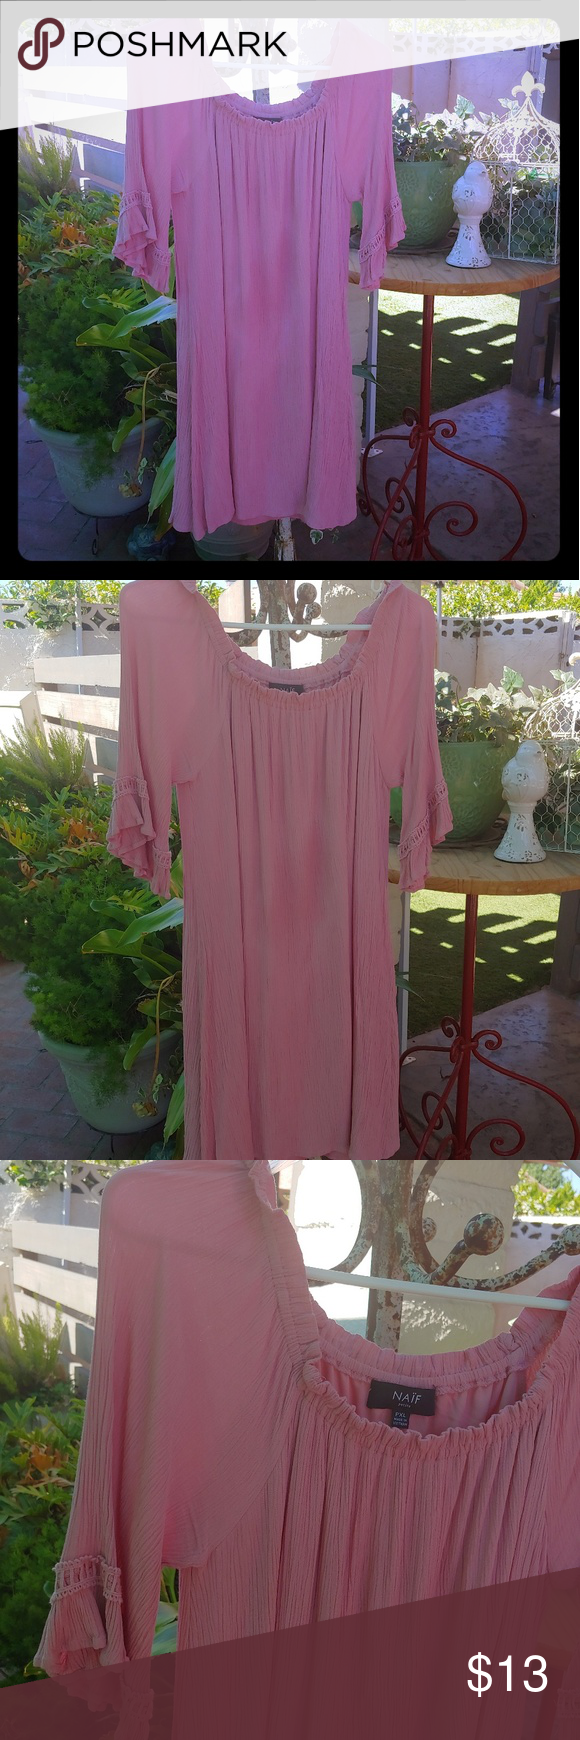 NAIF,  Off the Shoulder Easy Flow Dress, Petite XL This dress is a cute fluttery style.  Color is a warm mauve/peach.  Dress has 2nd layer lining. No …